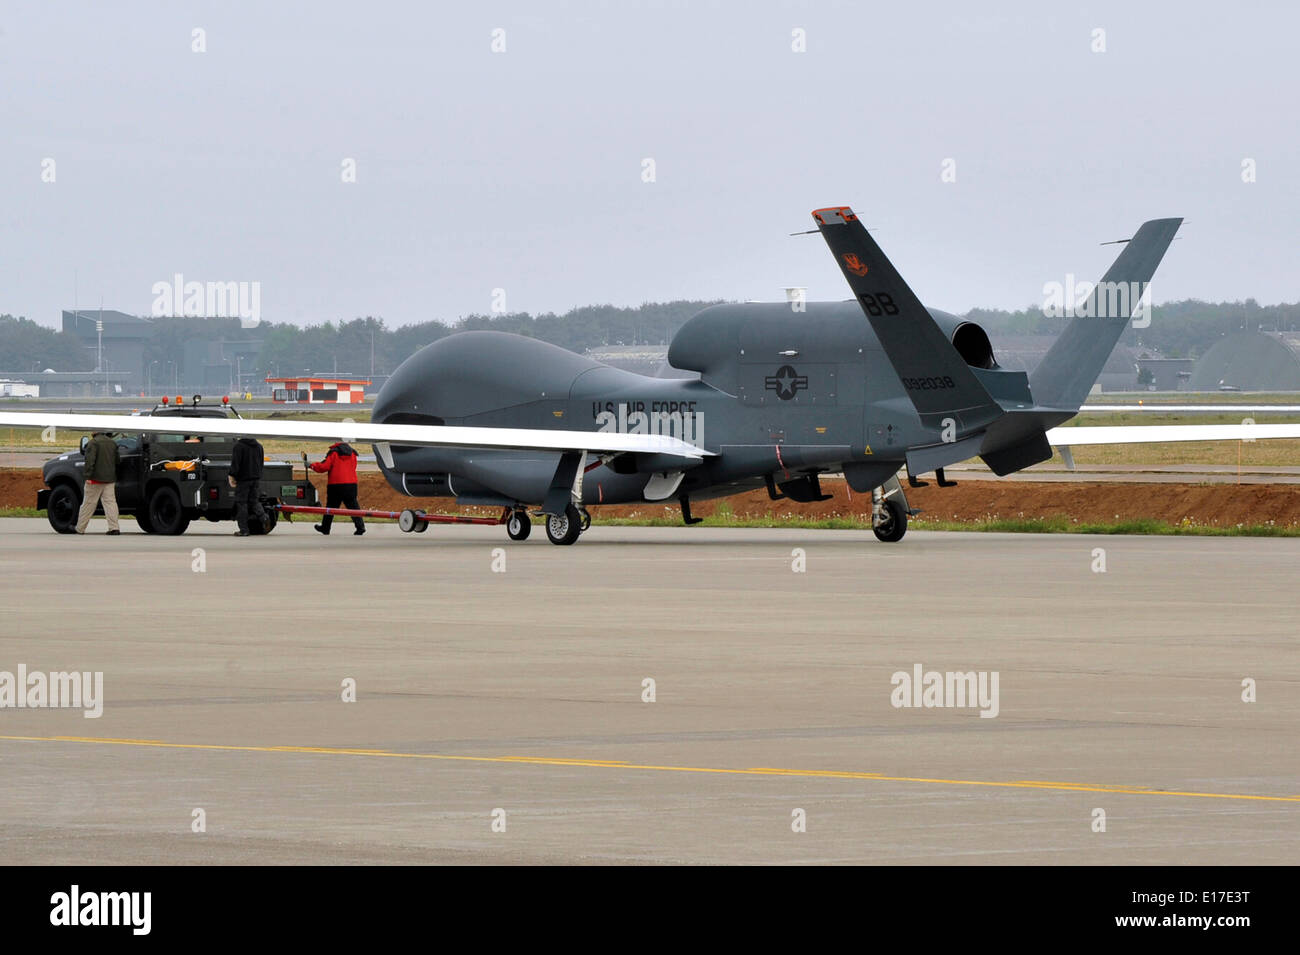 A US Air Force RQ-4 Global Hawk unmanned aerial drone is towed after landing for the first time on Japanese territory at Misawa Air Base May 24, 2014 in Aomori Prefecture, Honshu, Japan. - Stock Image